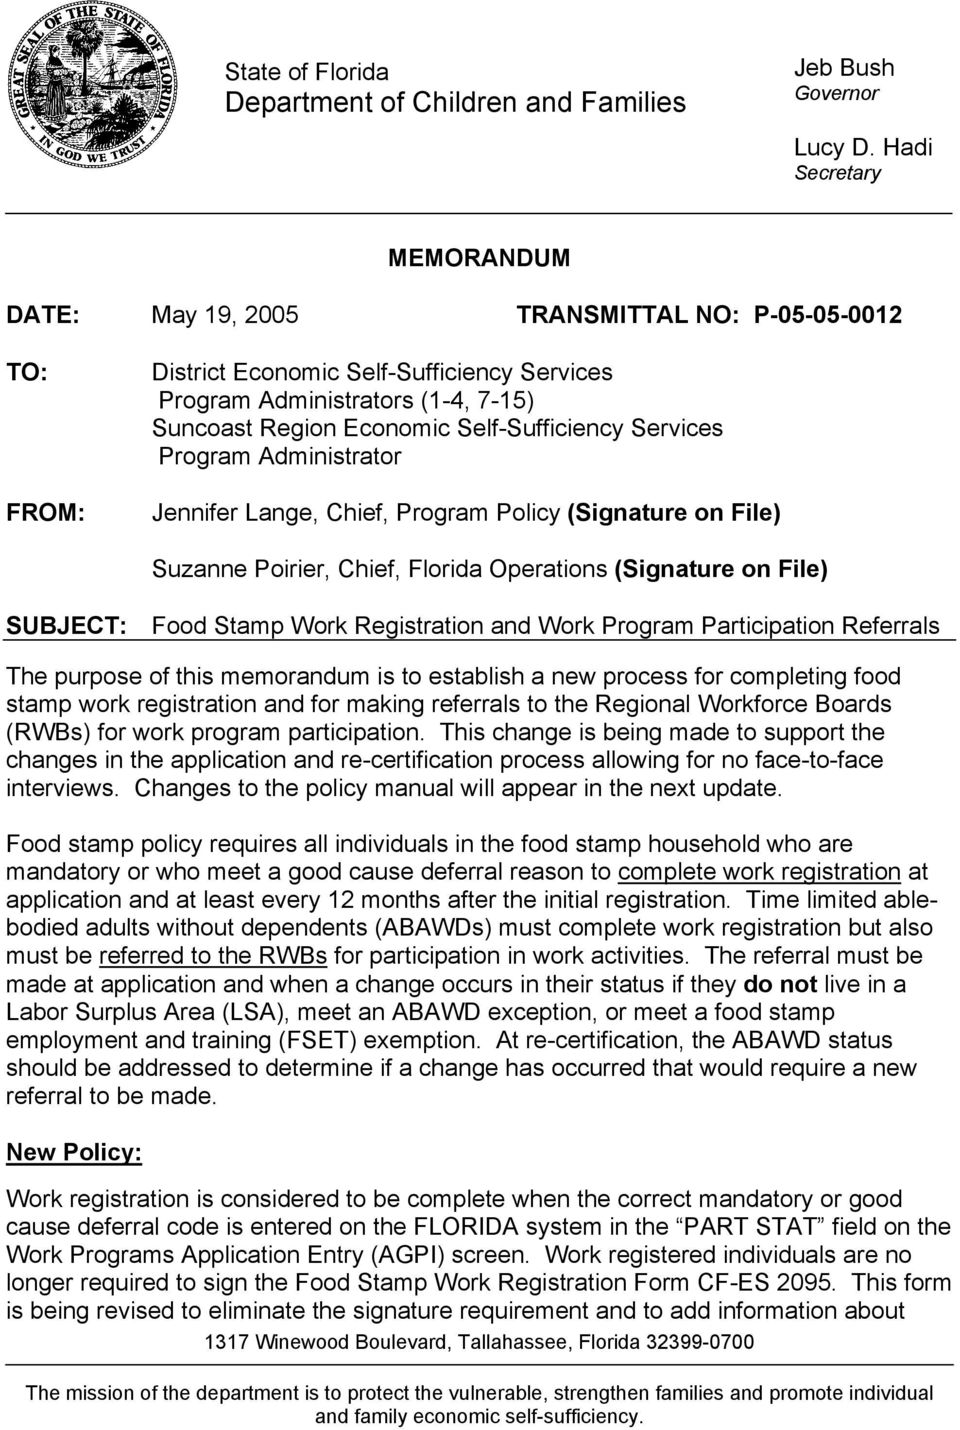 Self-Sufficiency Services Program Administrator Jennifer Lange, Chief, Program Policy (Signature on File) Suzanne Poirier, Chief, Florida Operations (Signature on File) SUBJECT: Food Stamp Work